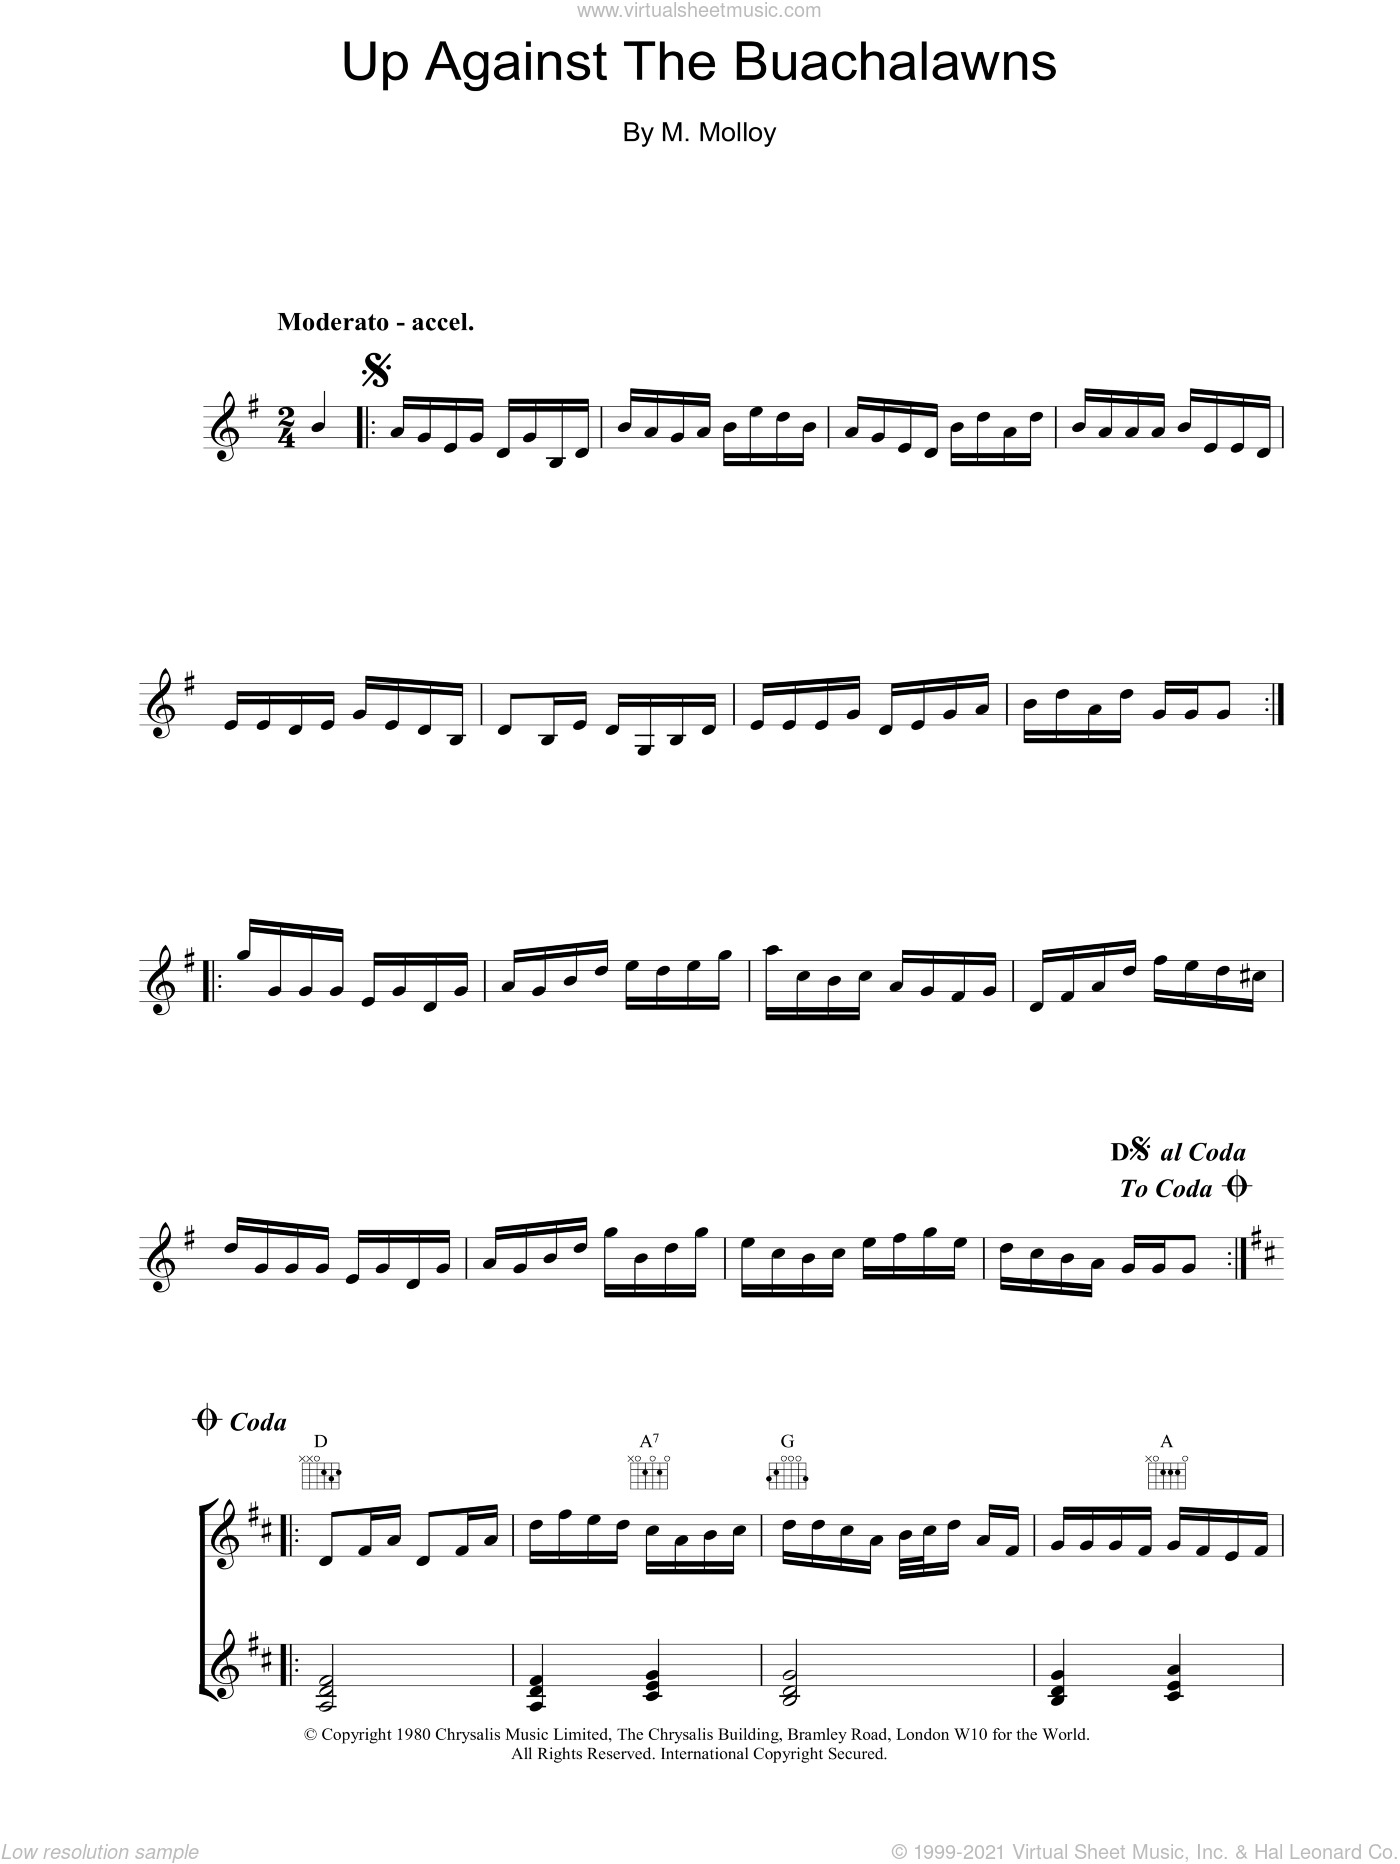 Up Against The Buachalawns sheet music for piano solo by M Molloy